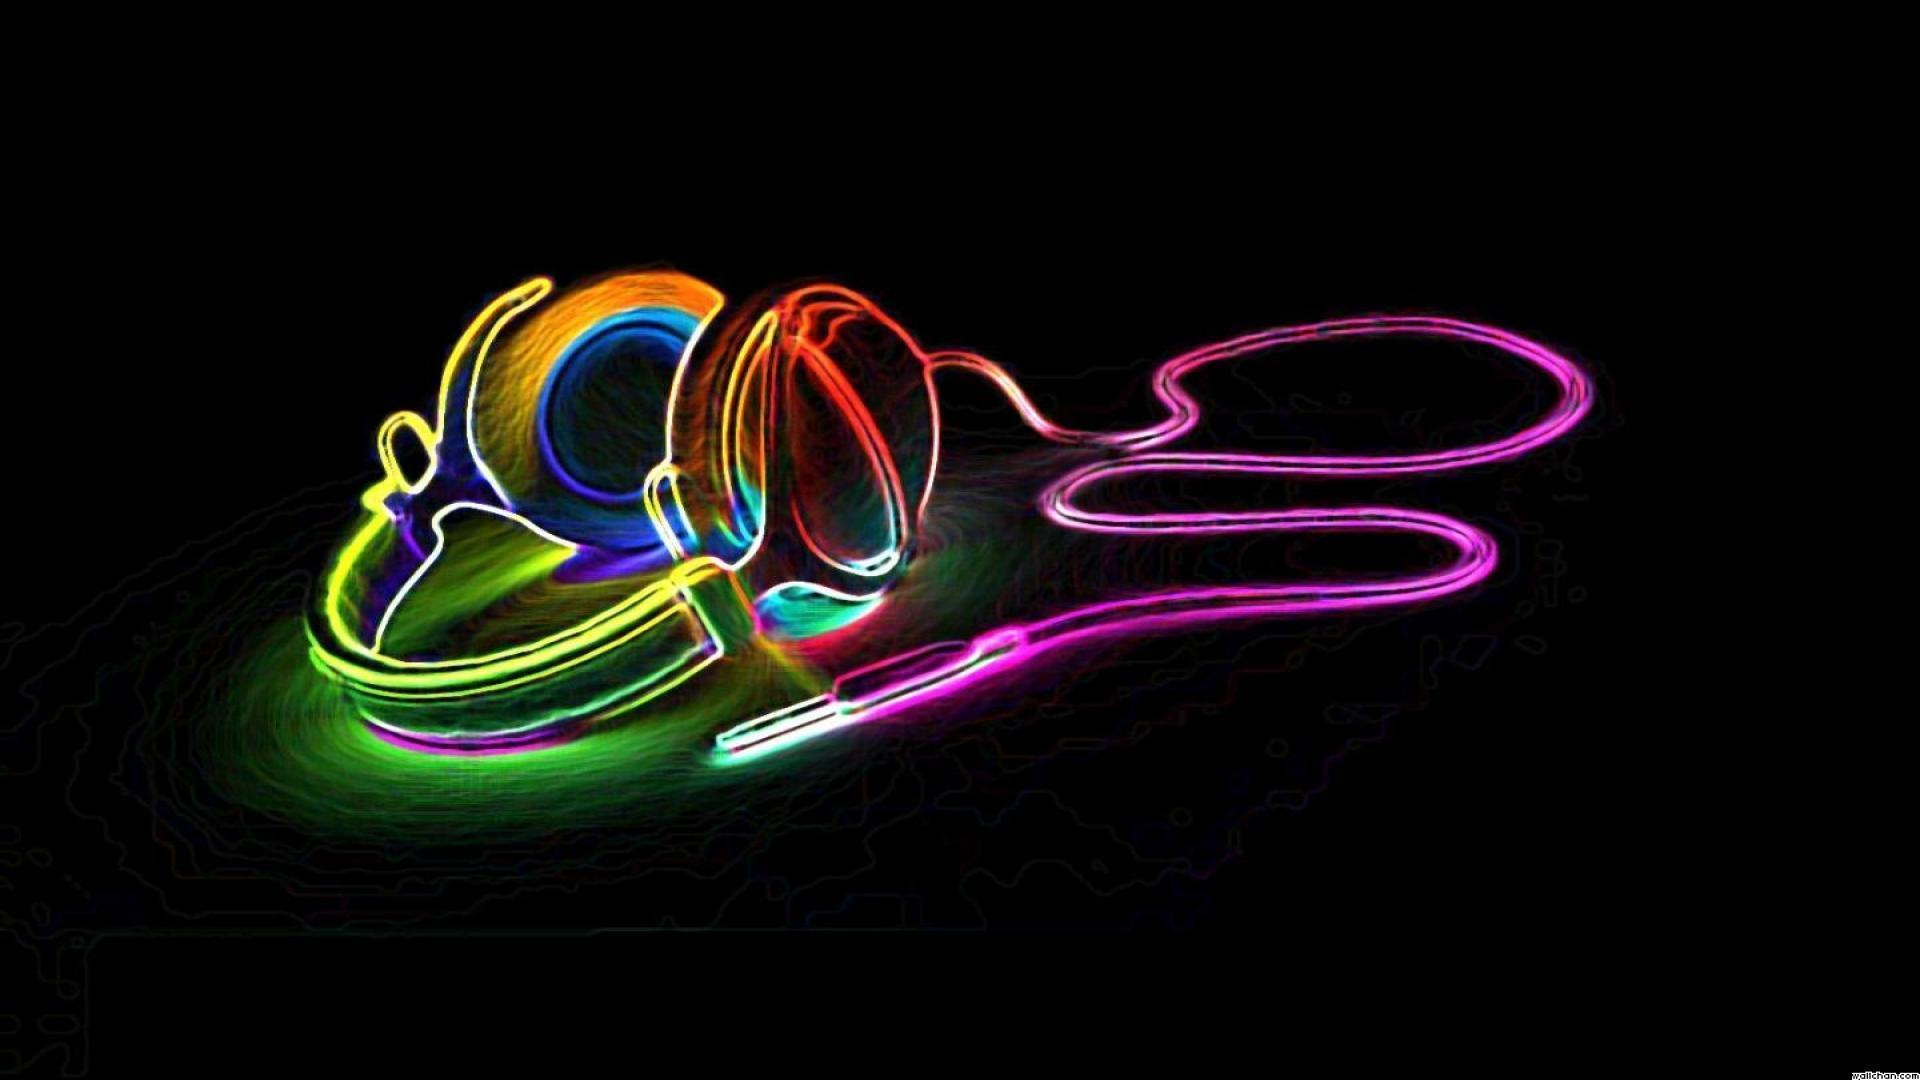 1368049 Neon Wallpapers HD free wallpapers backgrounds images FHD ...